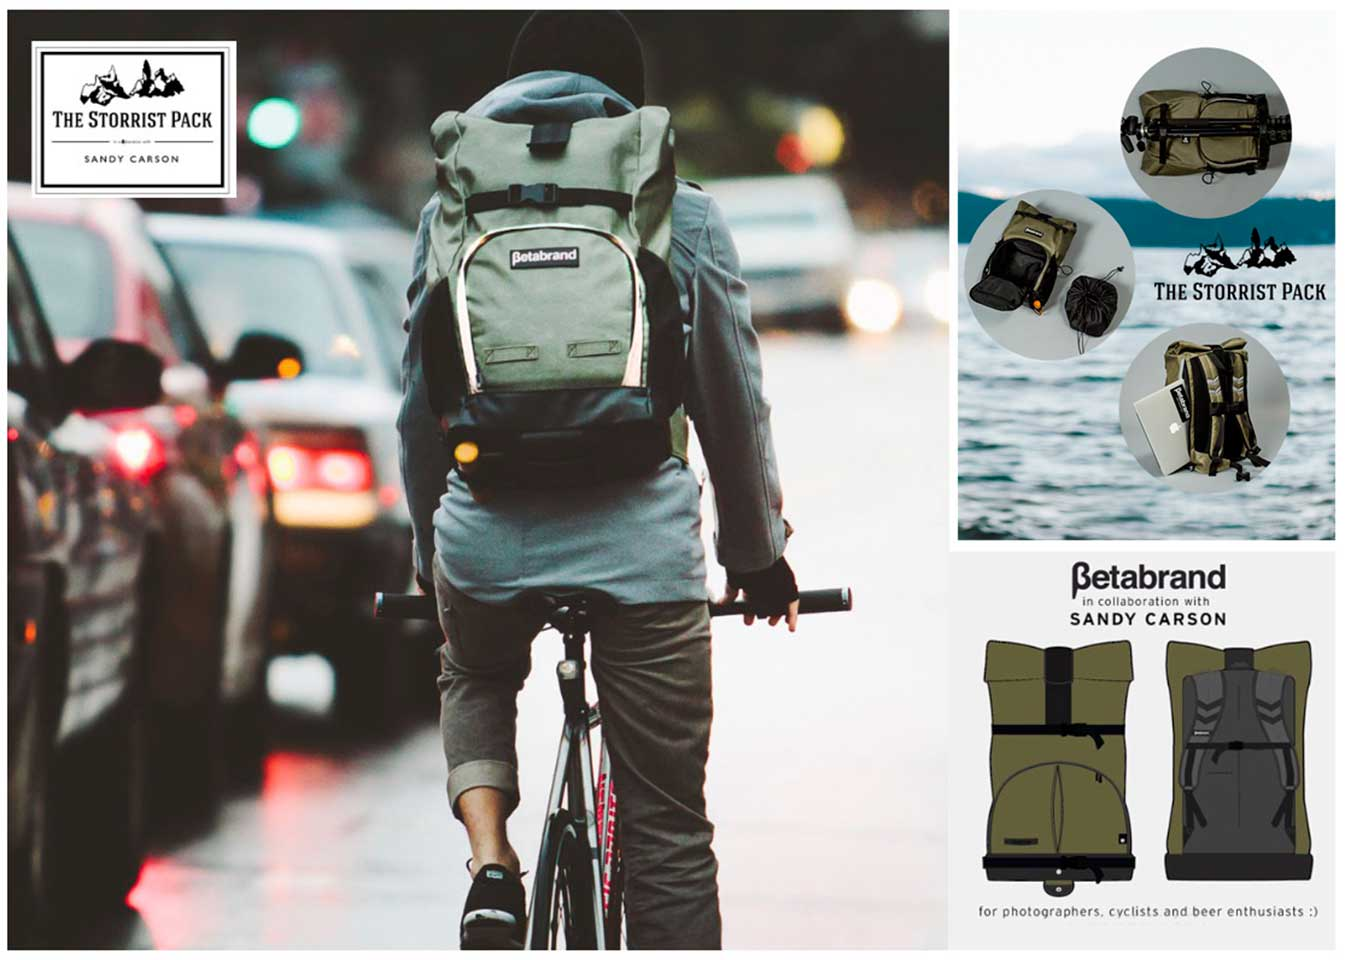 Signature camera/cycling backpack in collaboration with Betabrand